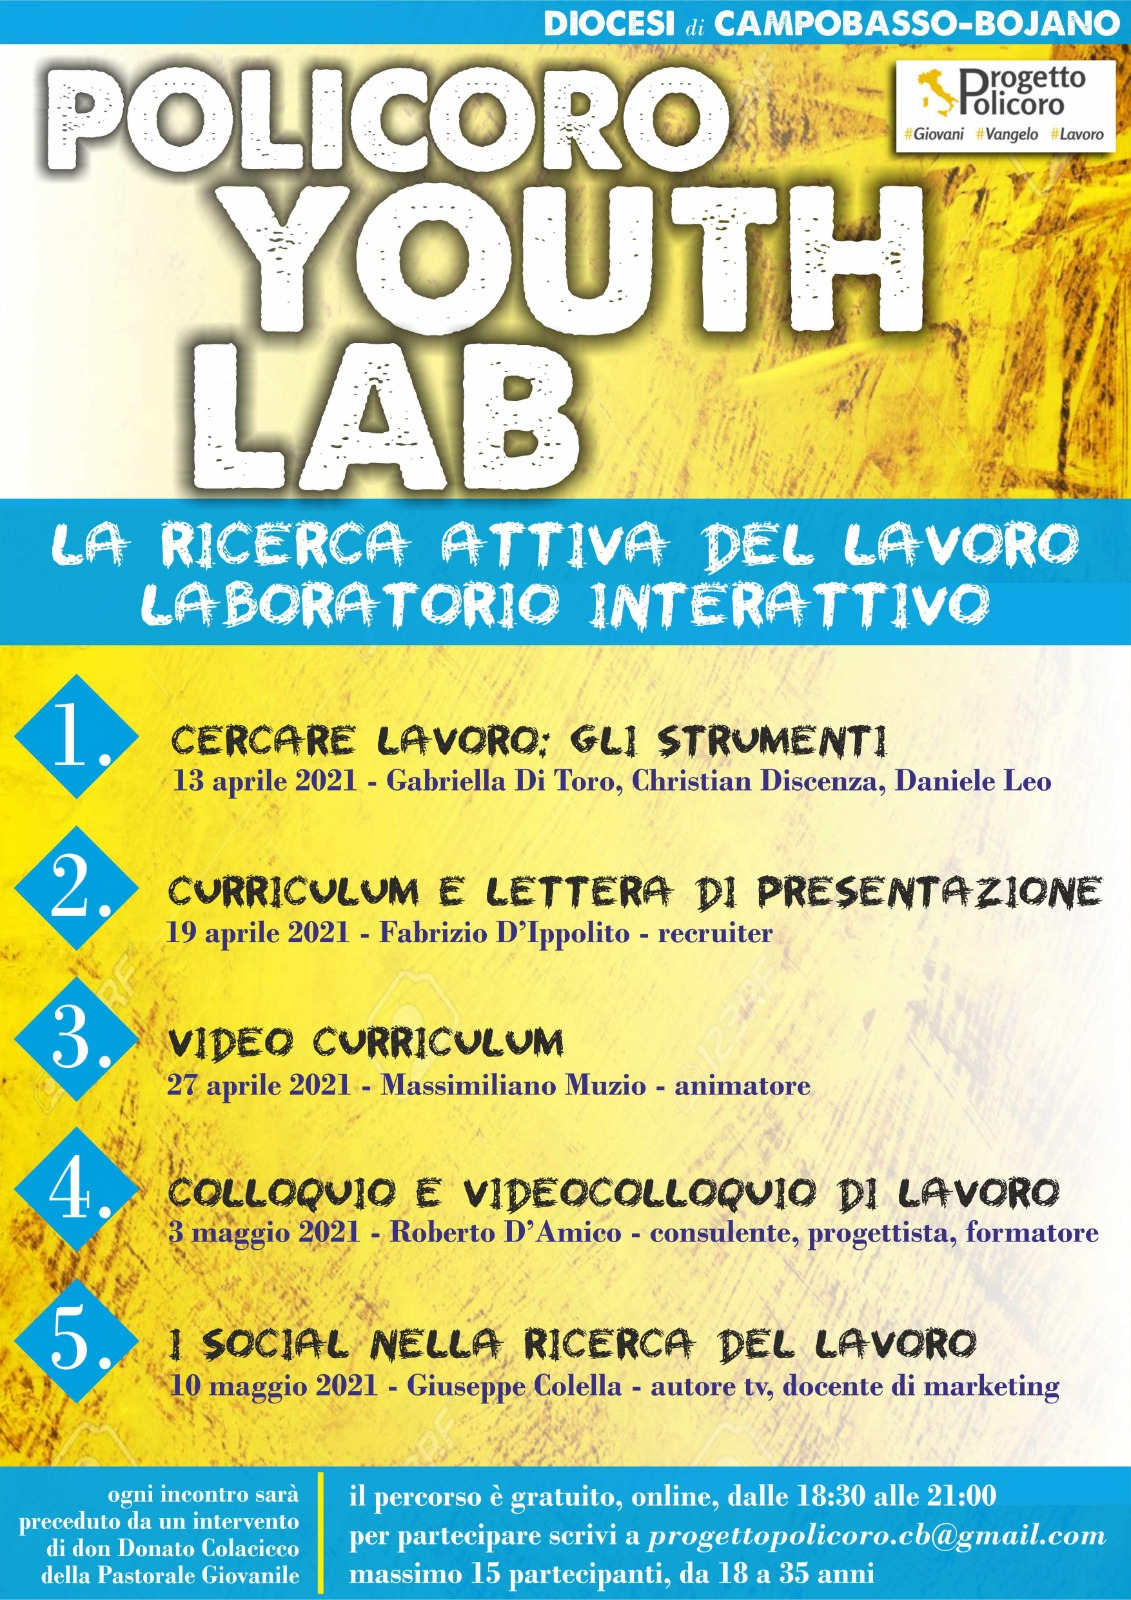 Policoro Youth Lab